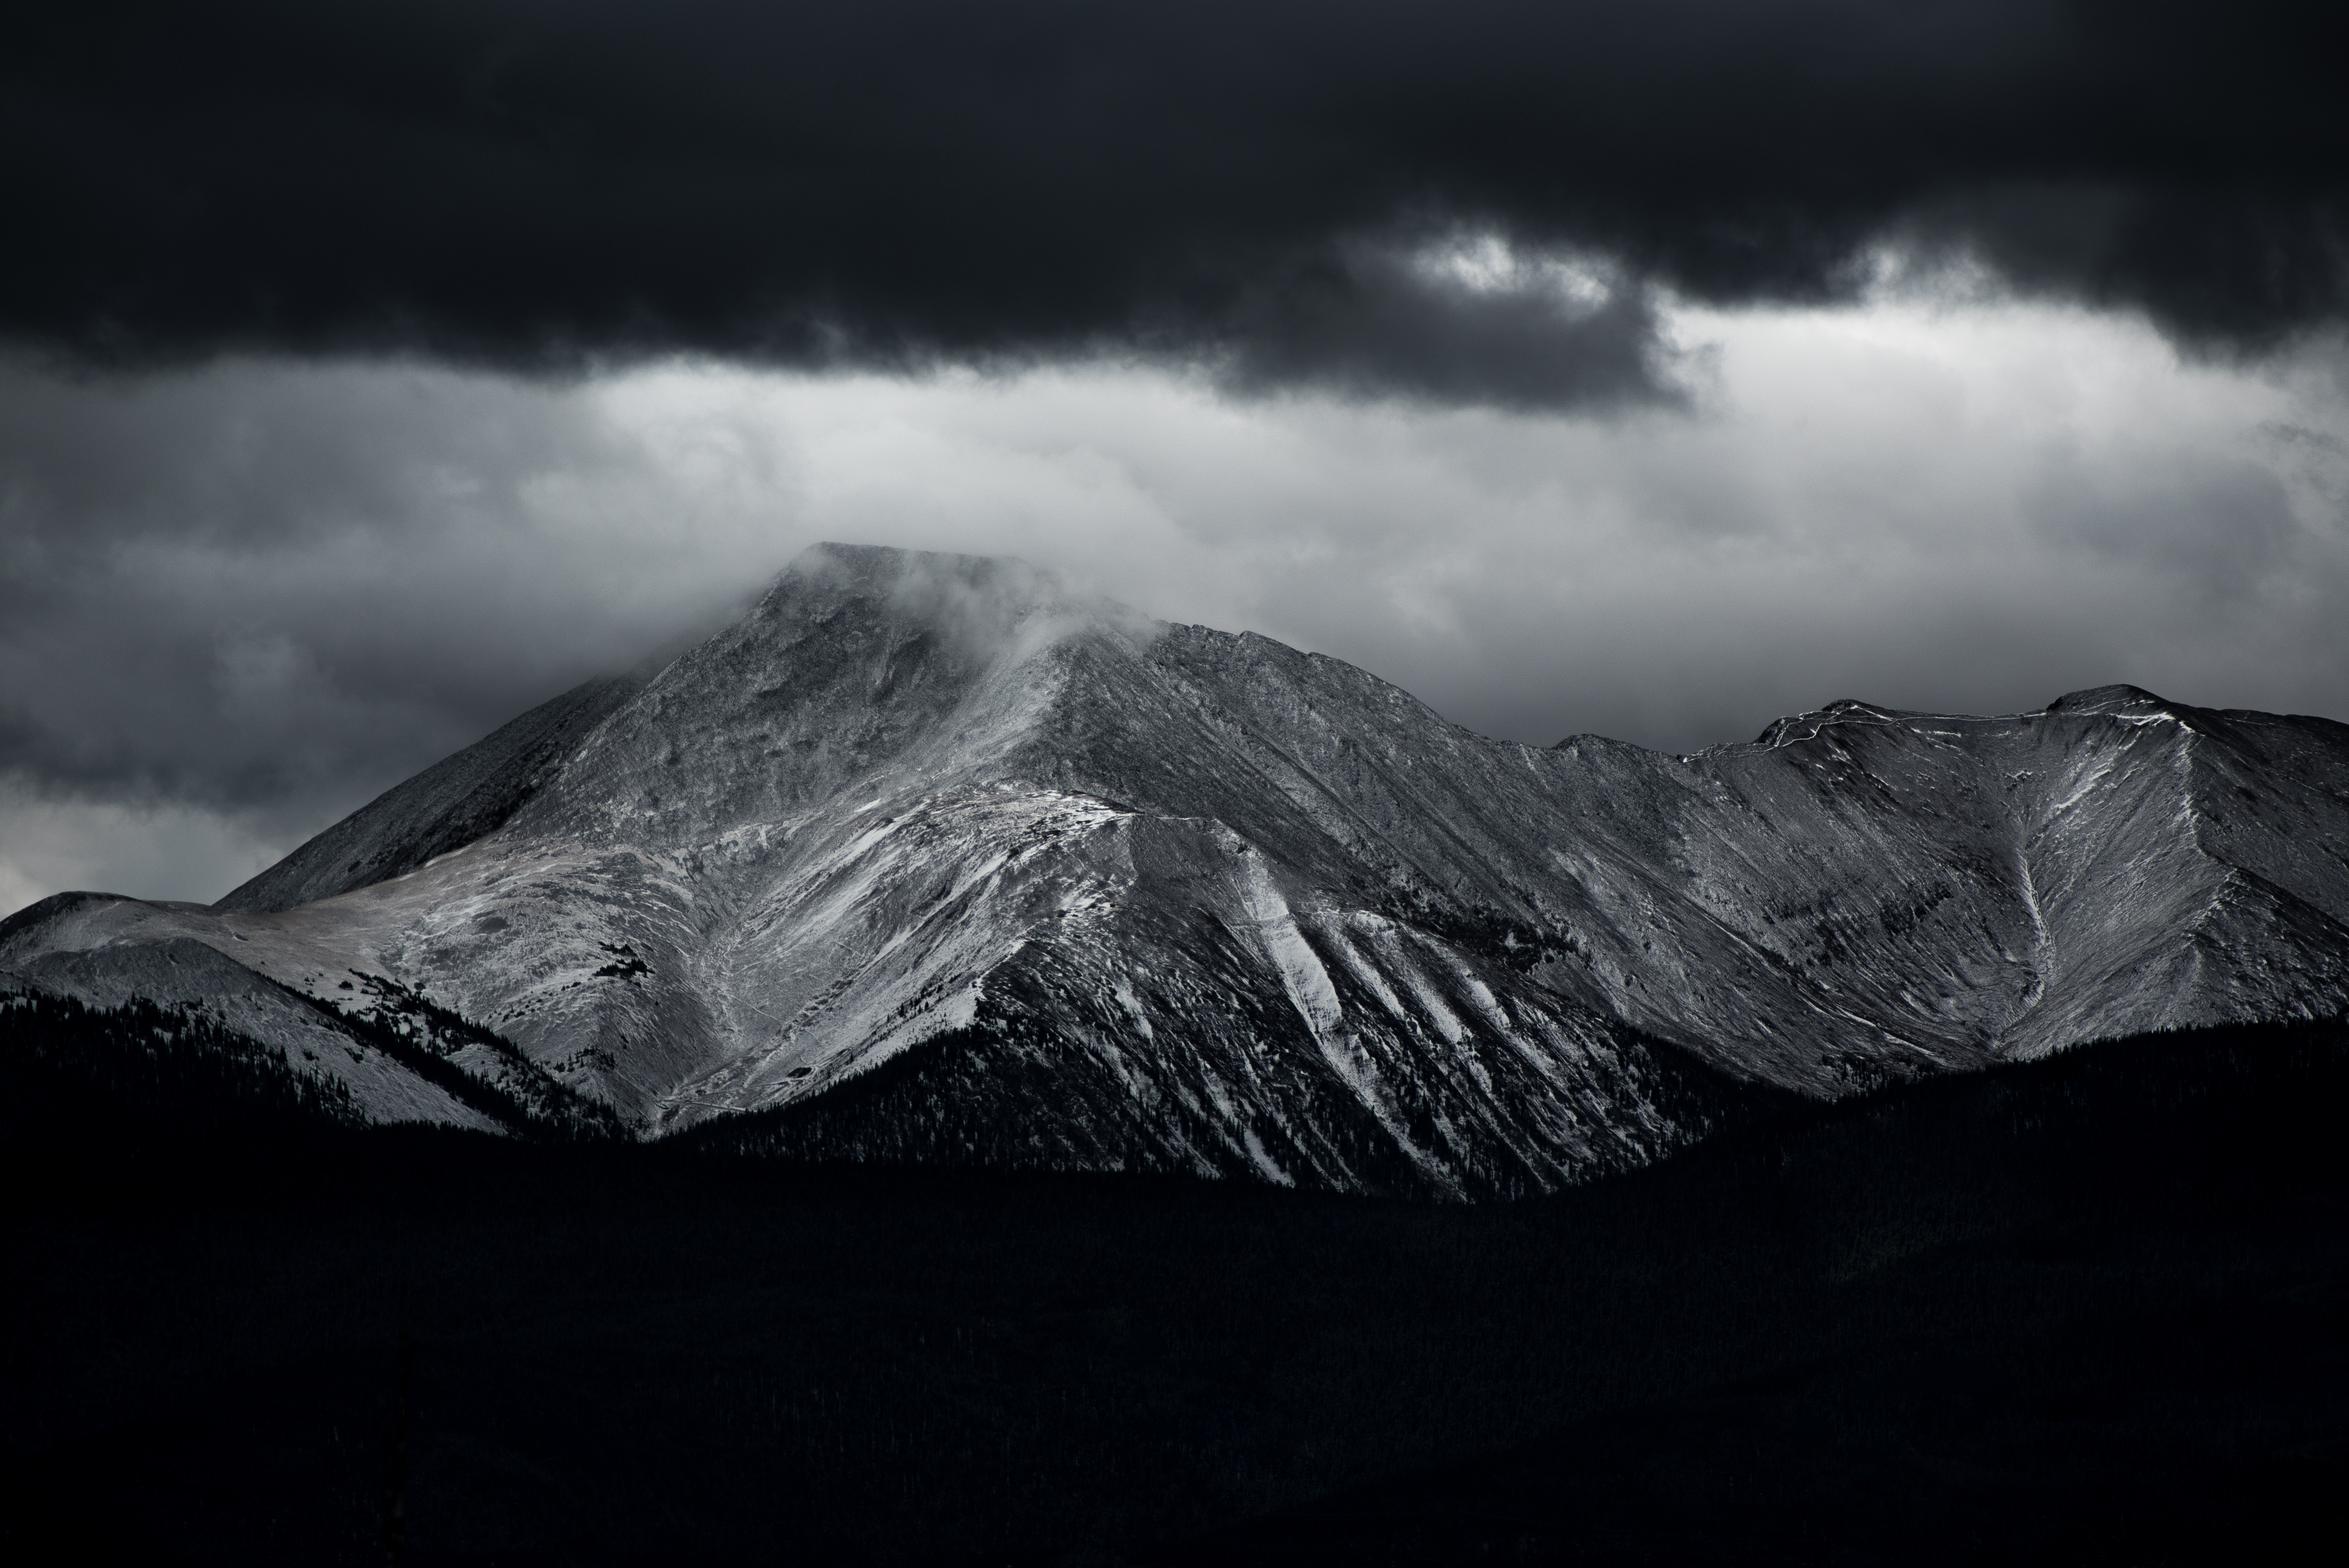 Dark Clouds on the Mountain